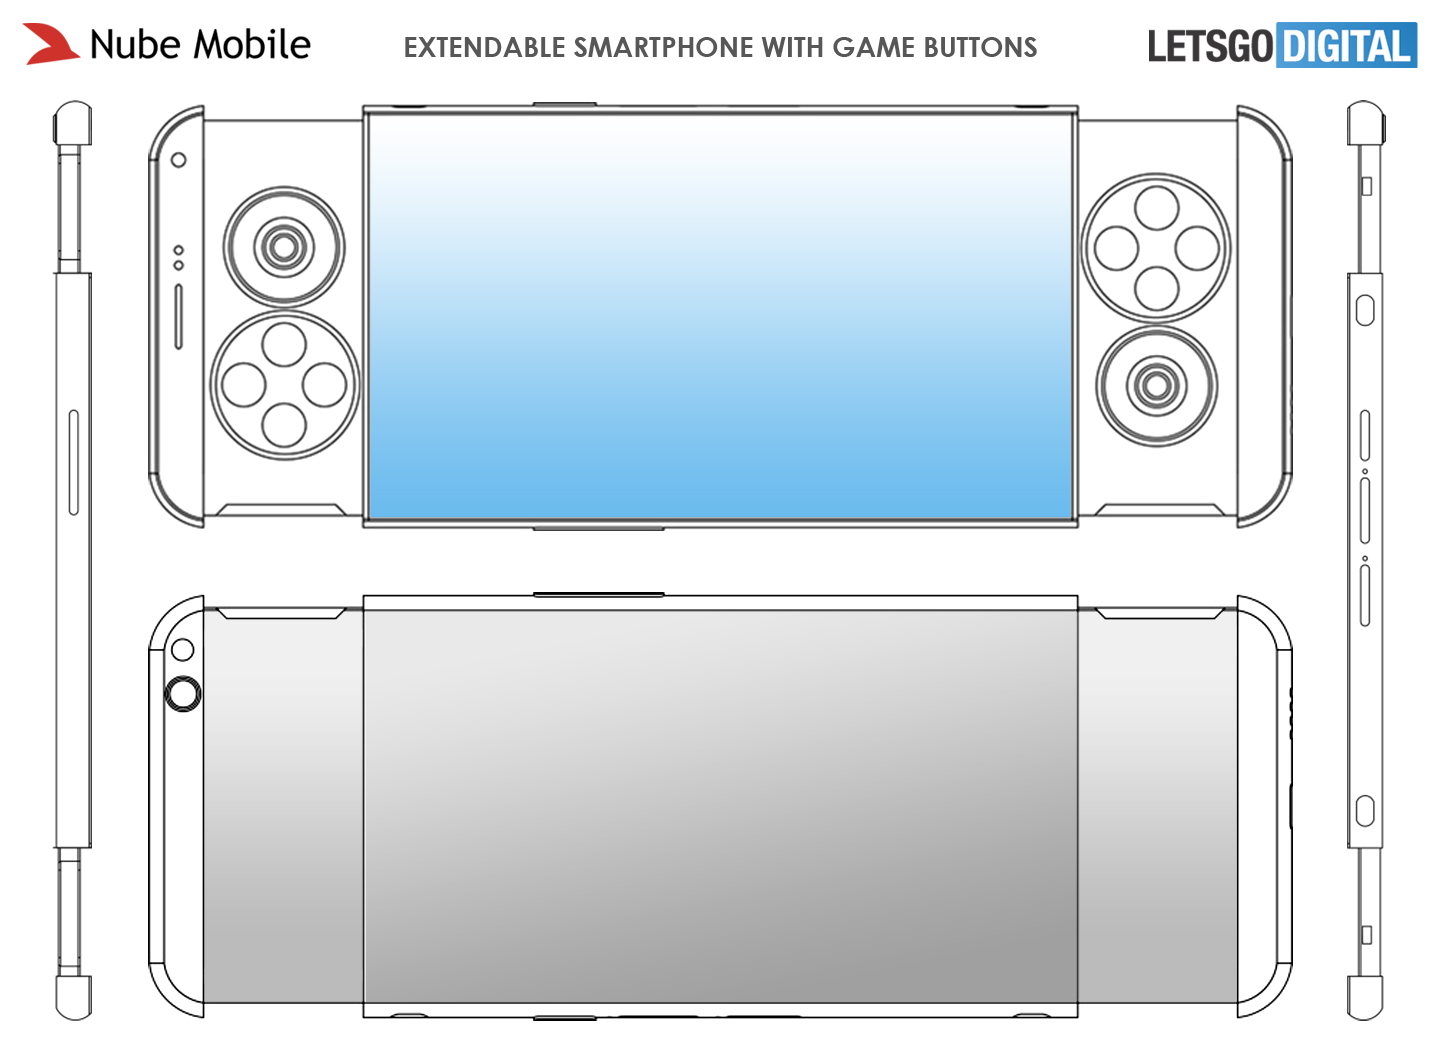 Telefoon met game buttons